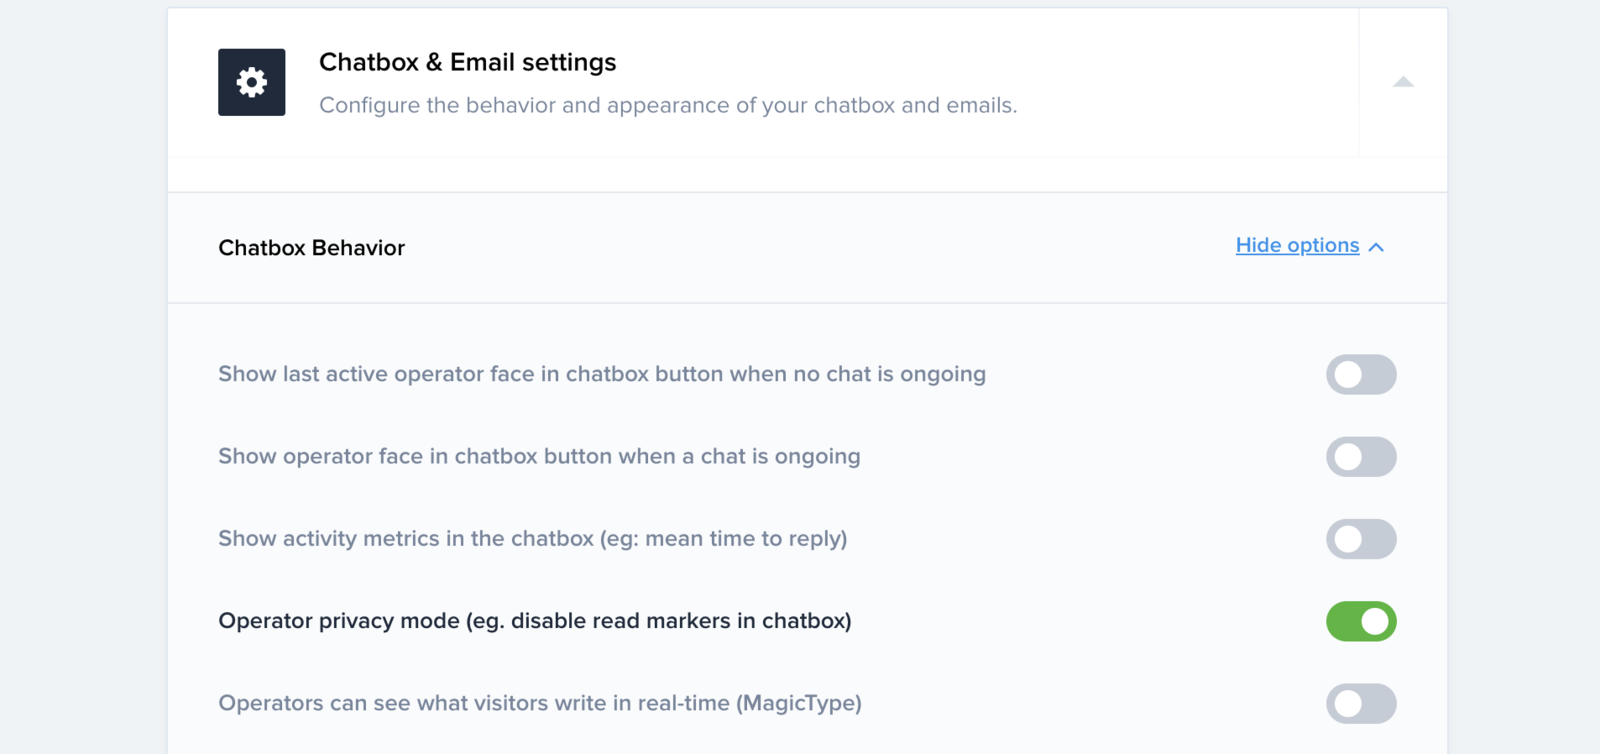 Enable operator privacy mode in your chatbox settings